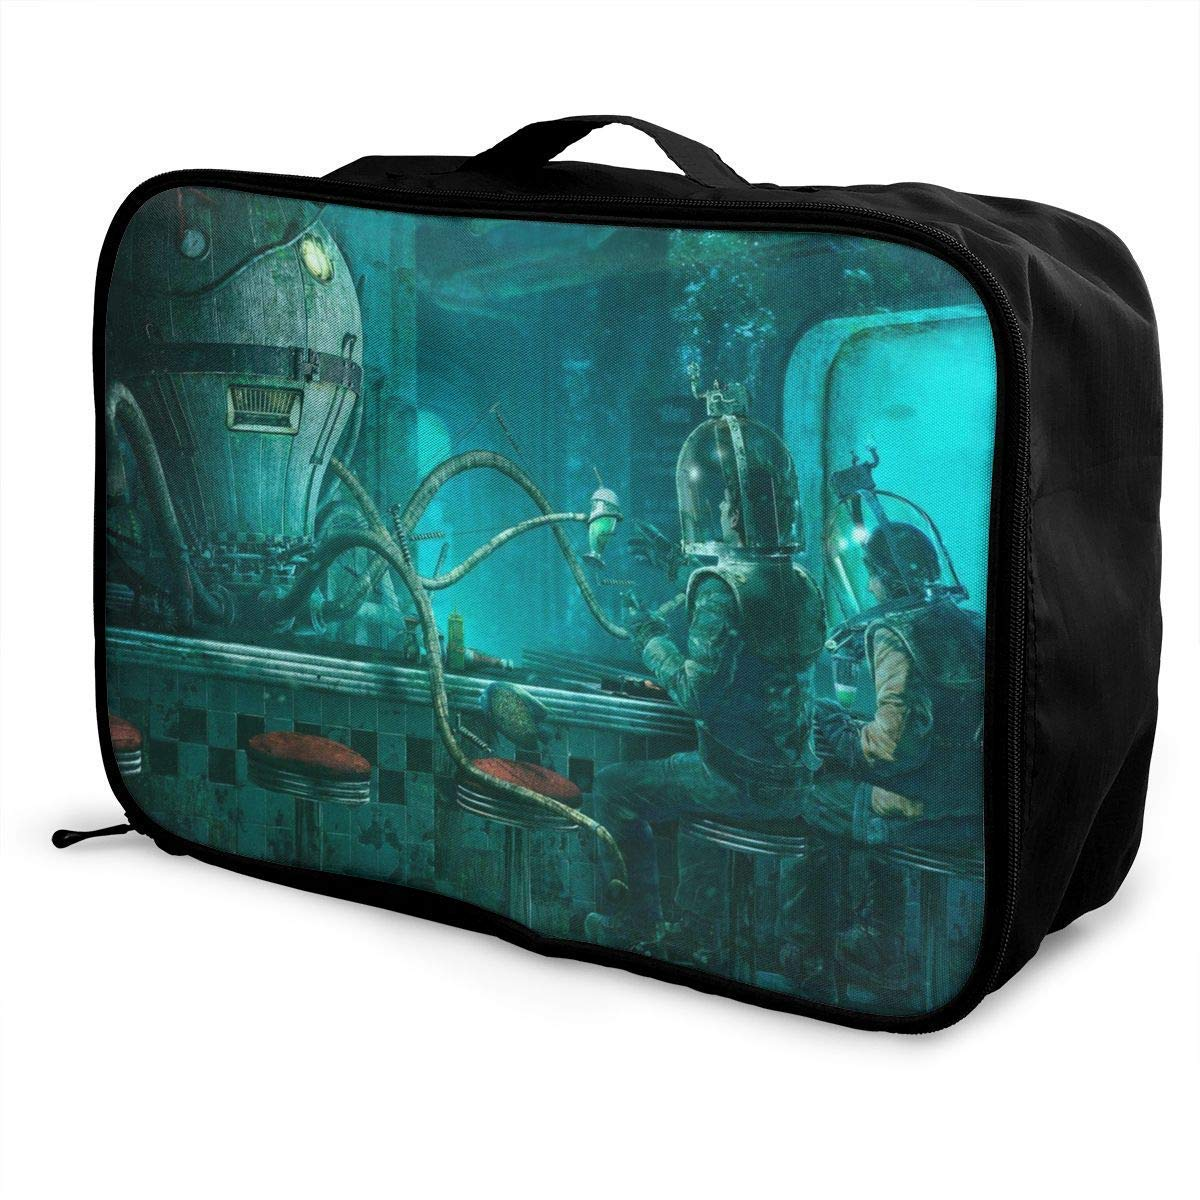 Portable Luggage Duffel Bag Steampunk Octopus Travel Bags Carry-on in Trolley Handle JTRVW Luggage Bags for Travel